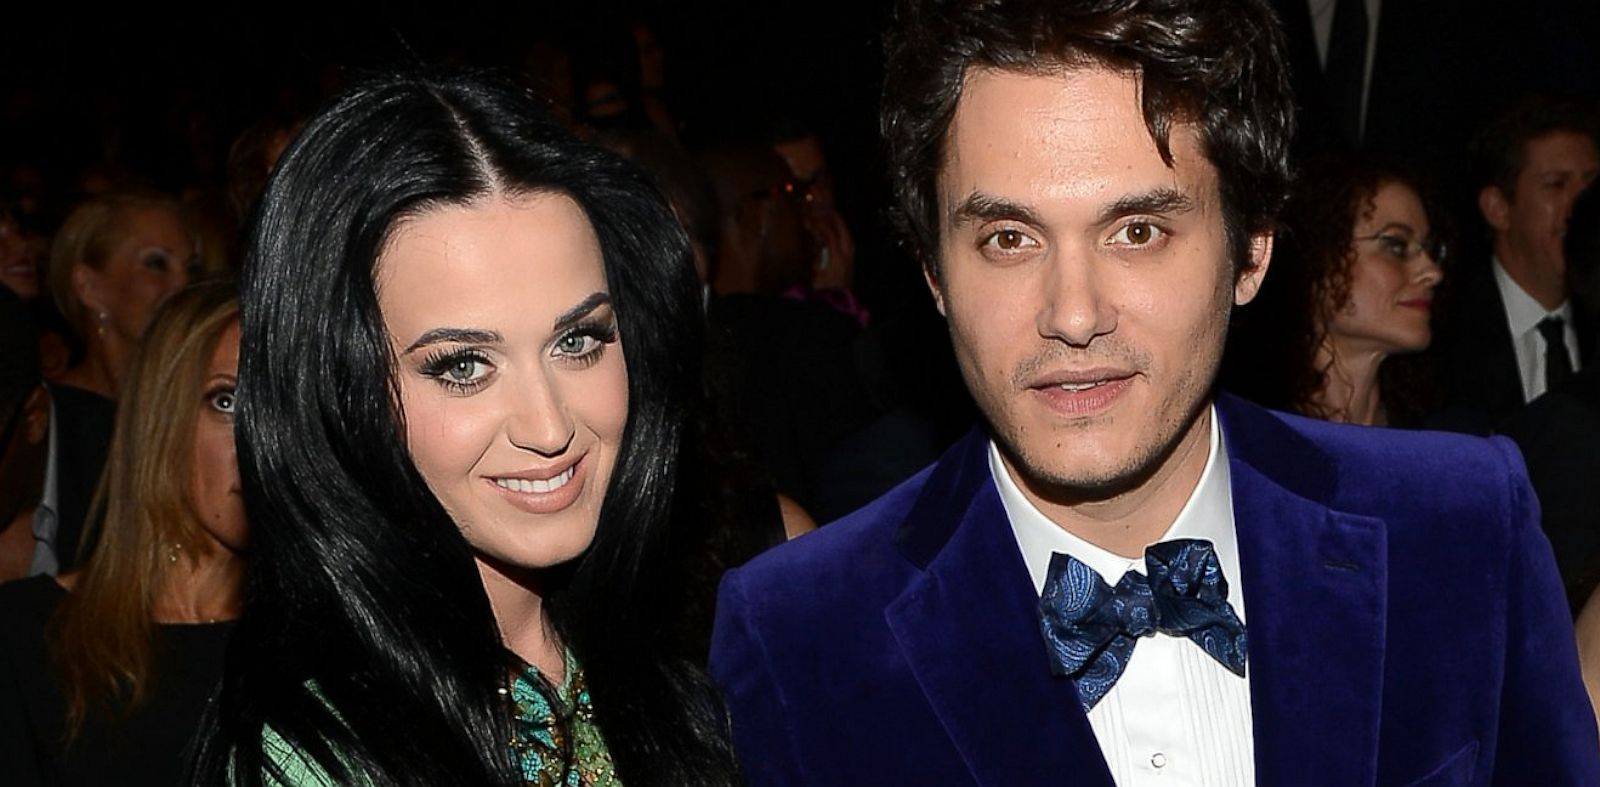 PHOTO: Katy Perry and John Mayer